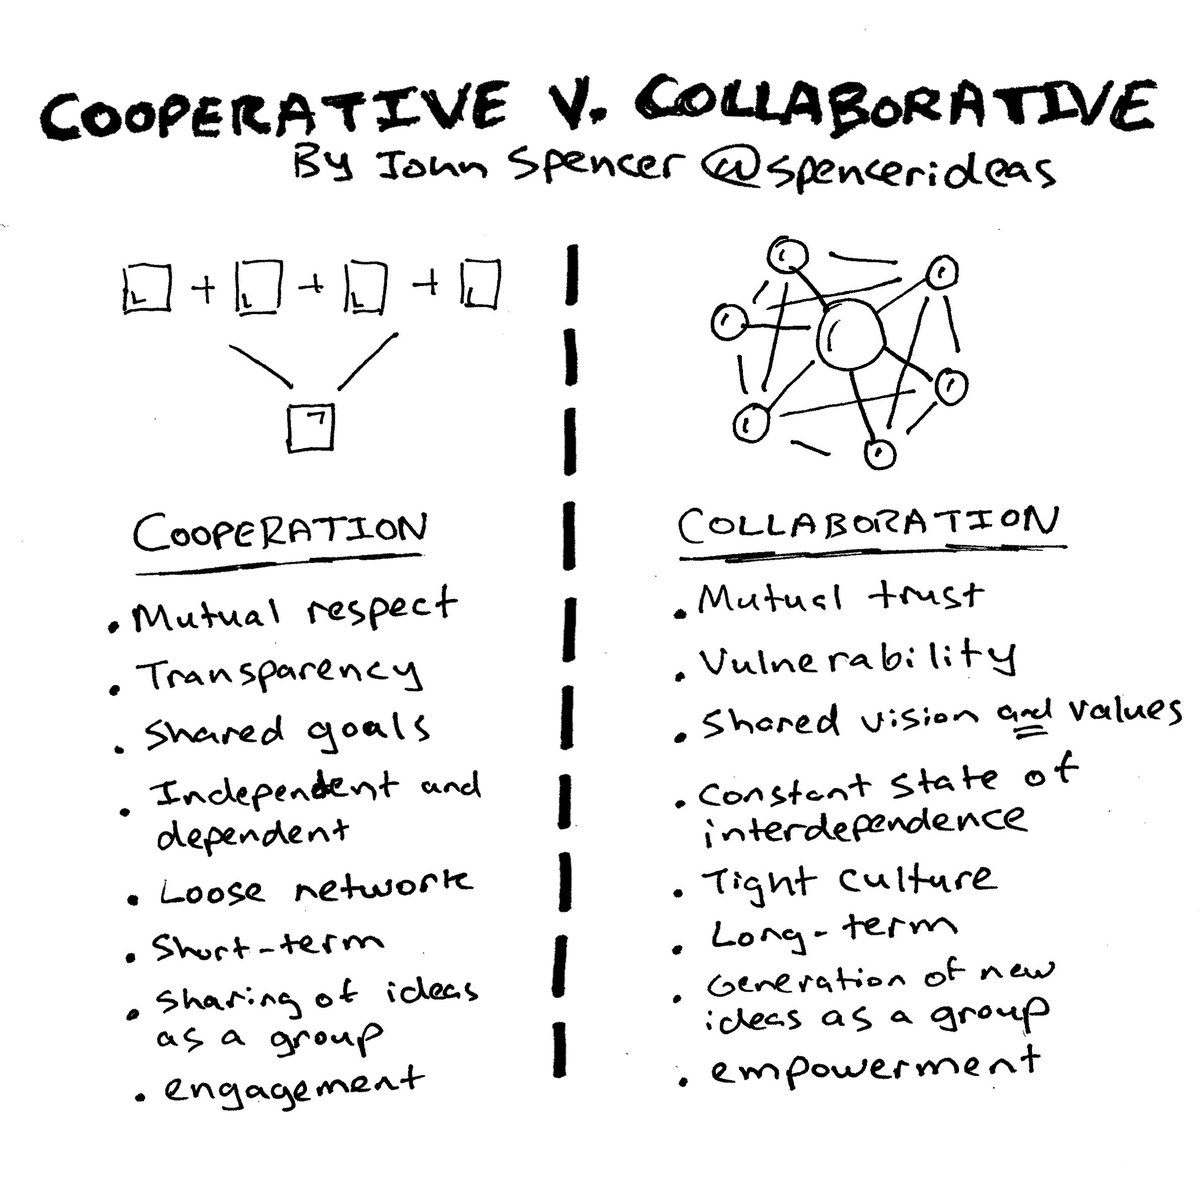 Video: The Difference Between Cooperation and Collaboration https://t.co/YQdmPO1AuJ https://t.co/nDczlWVJpJ